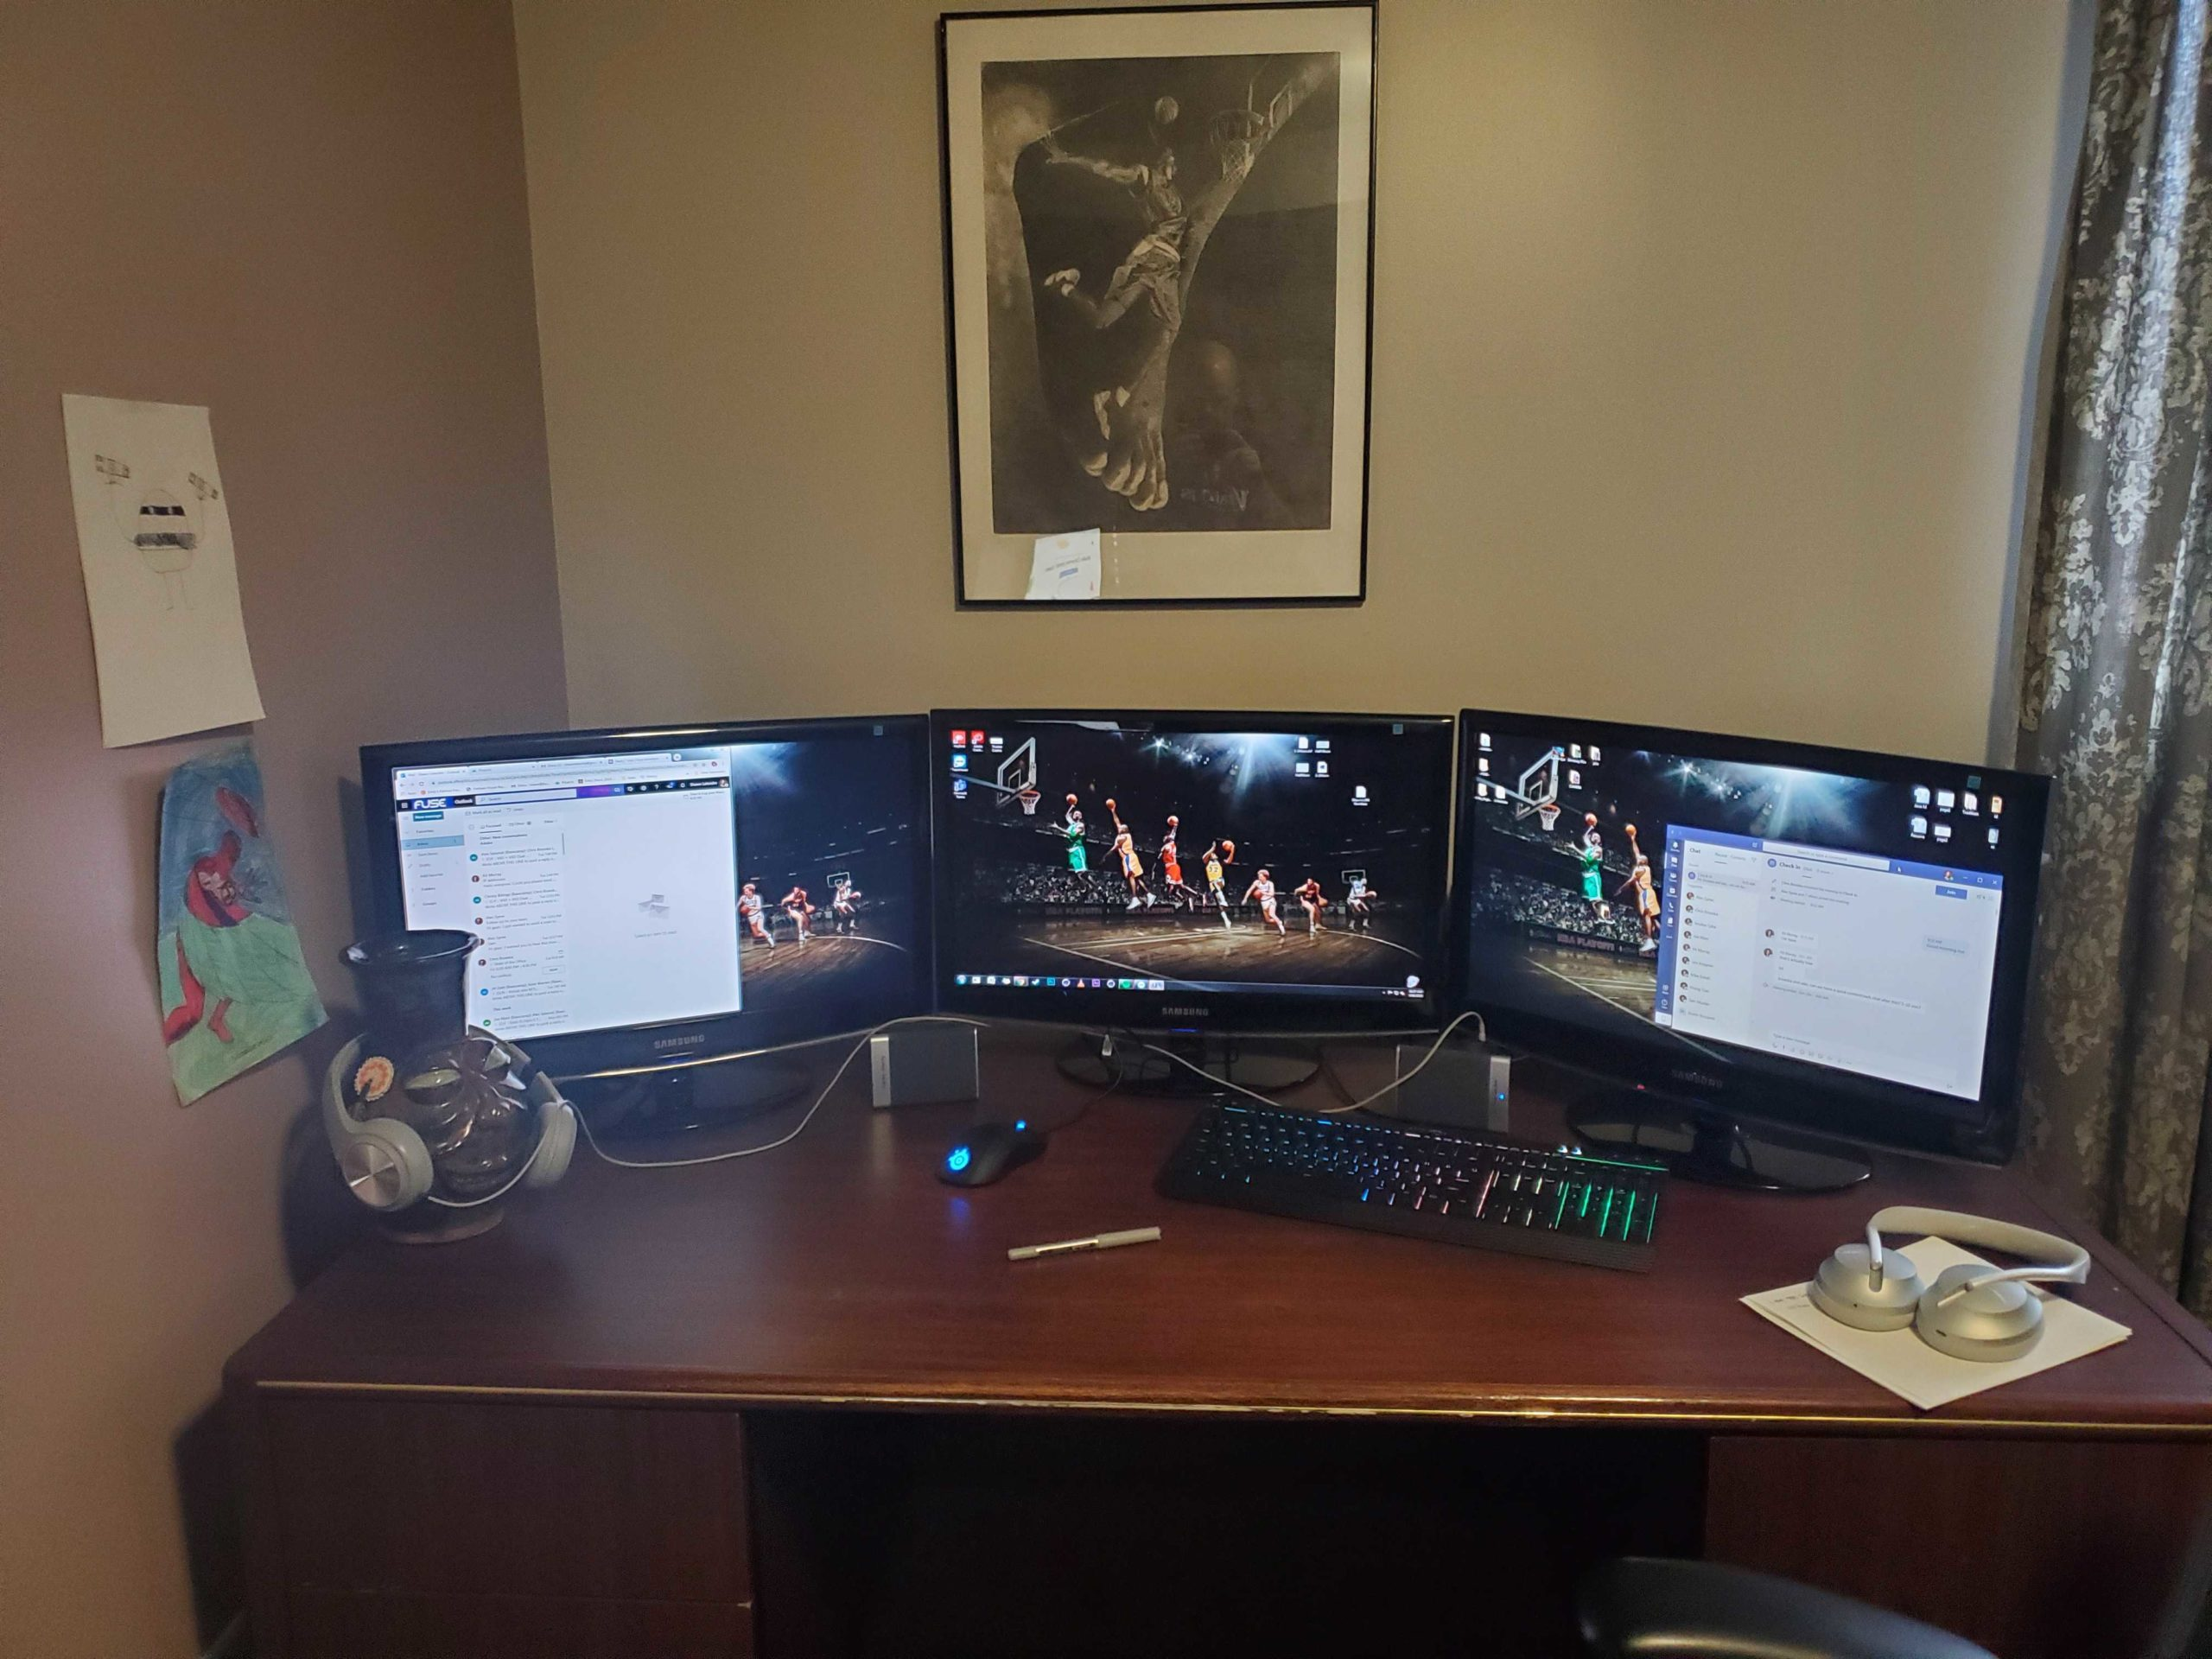 picture of shawn's work from home station